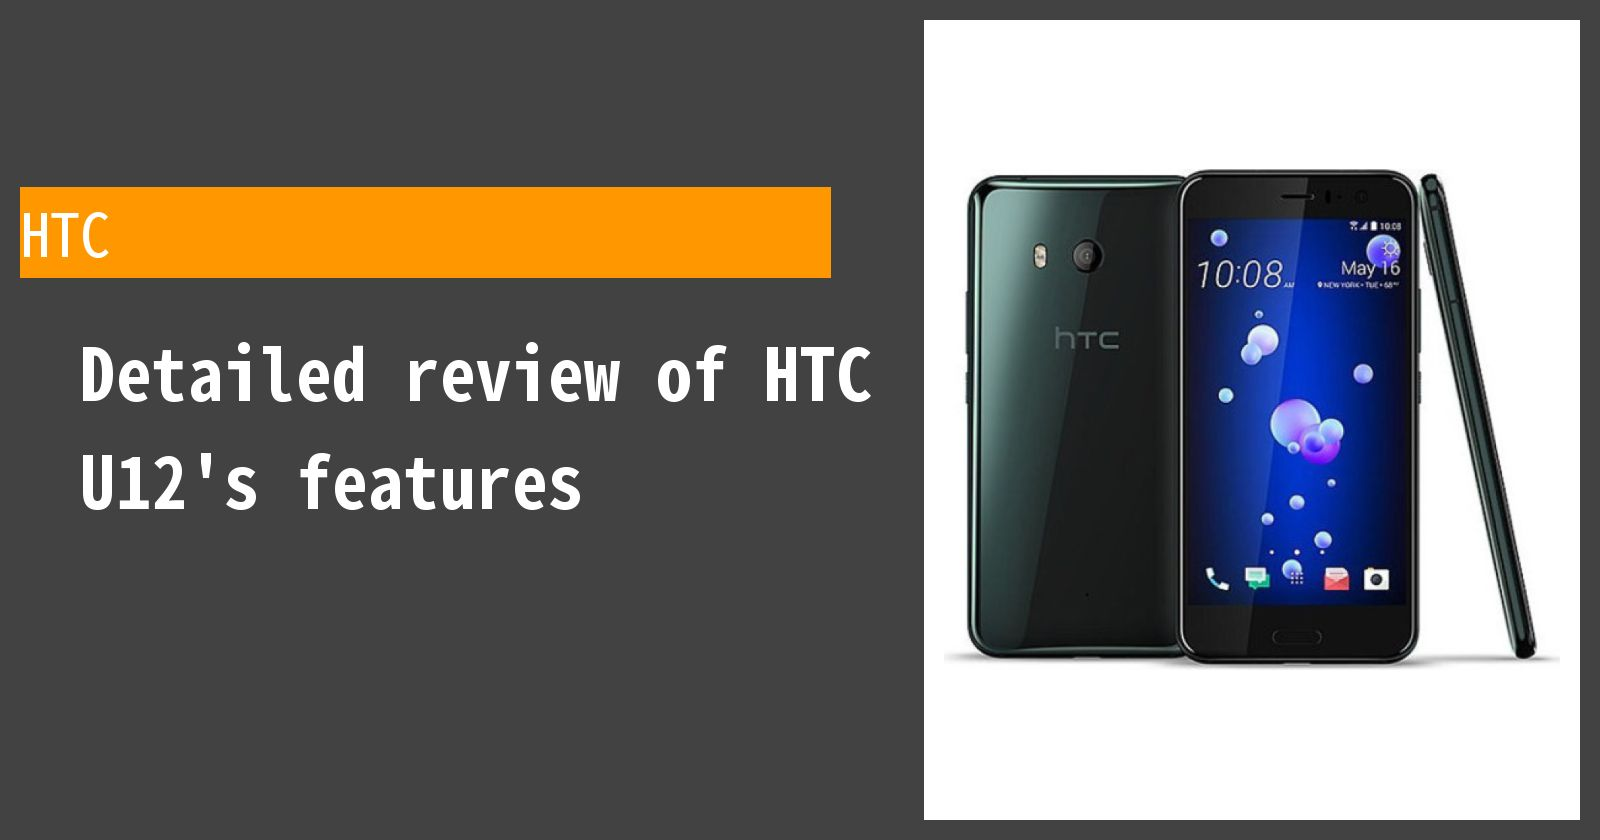 Detailed review of HTC U12's features